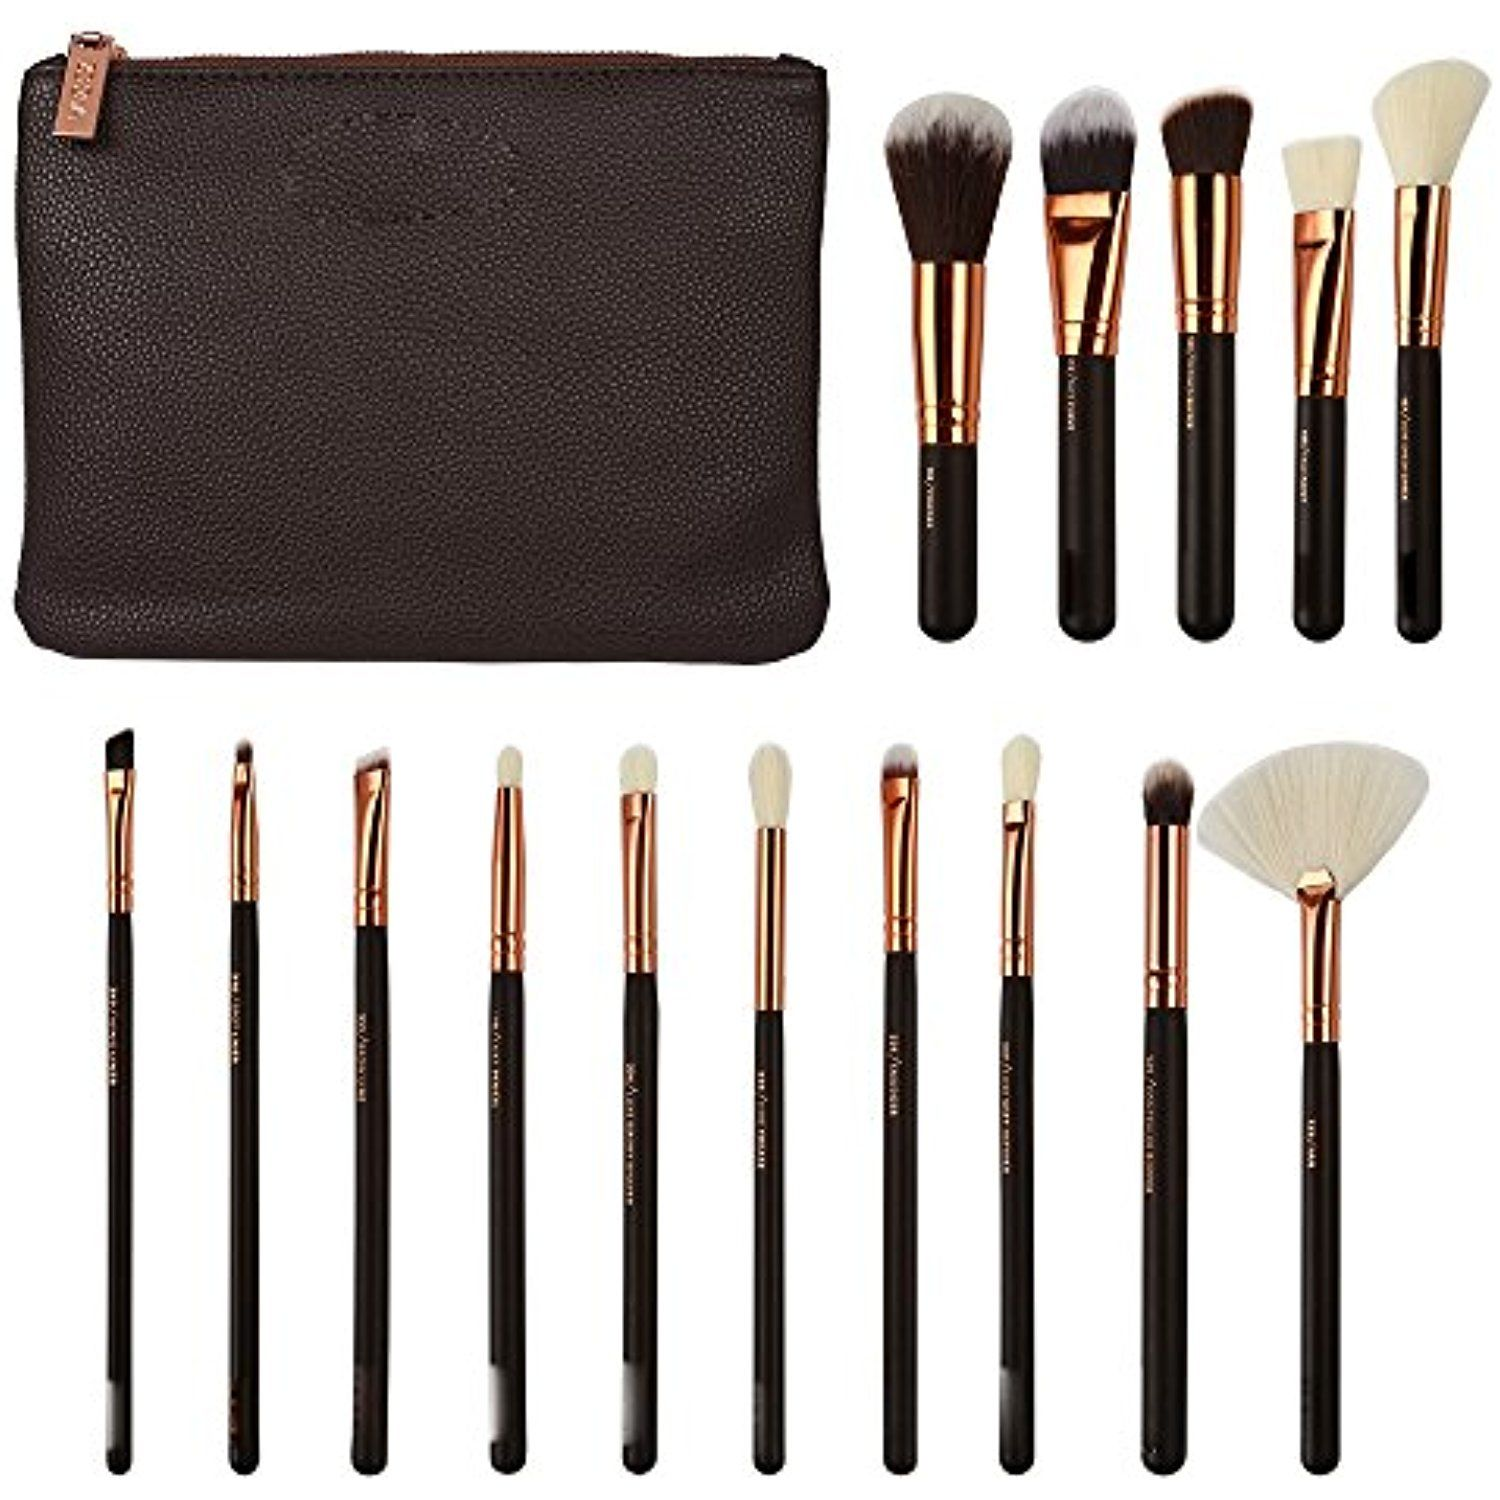 Zoe Complete Face And Eye Makeup Brush Set With Case 8 /12